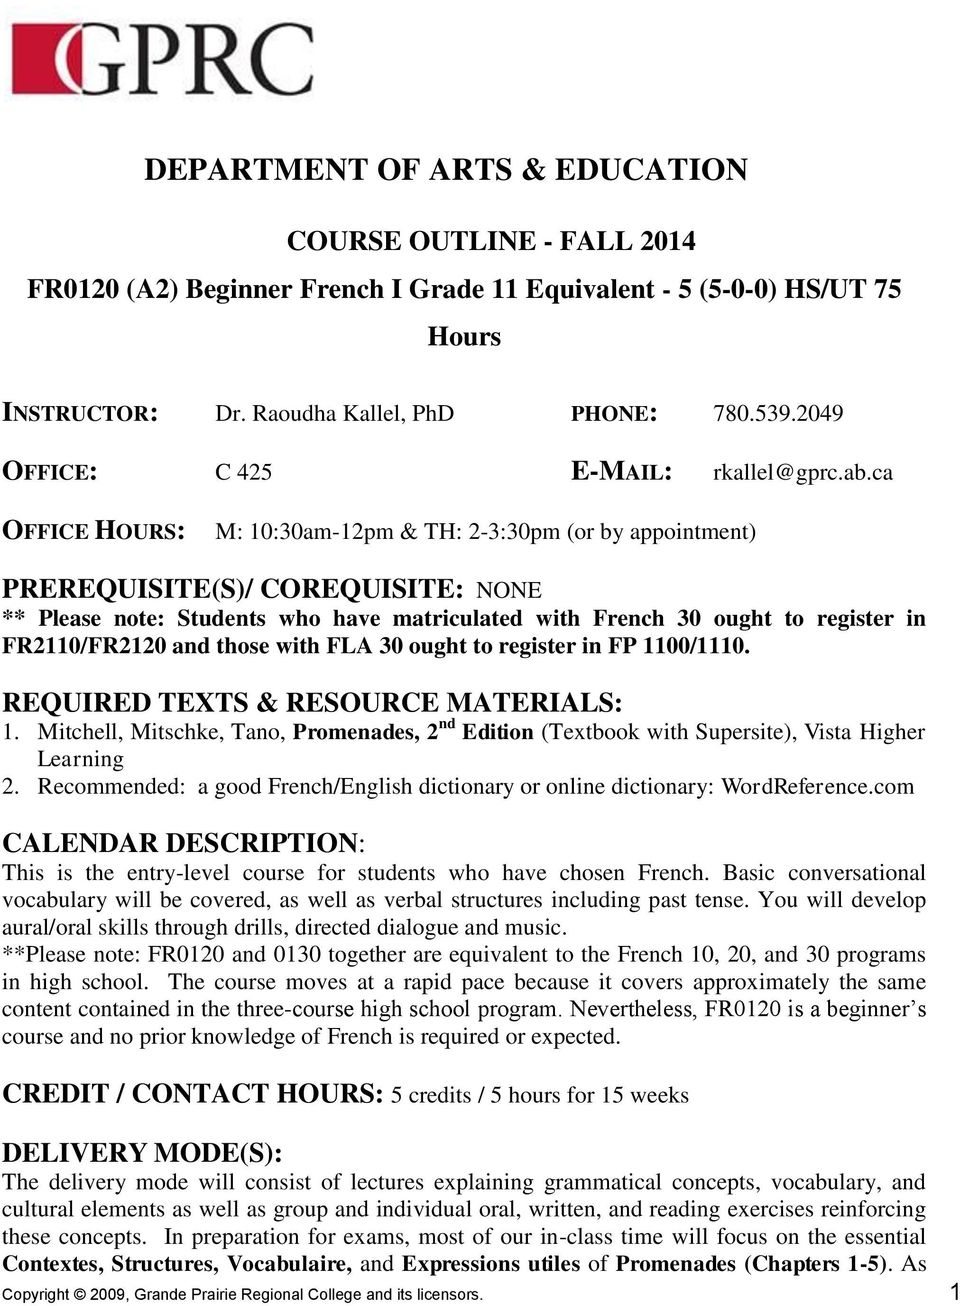 ca OFFICE HOURS: M: 10:30am-12pm & TH: 2-3:30pm (or by appointment) PREREQUISITE(S)/ COREQUISITE: NONE ** Please note: Students who have matriculated with French 30 ought to register in FR2110/FR2120